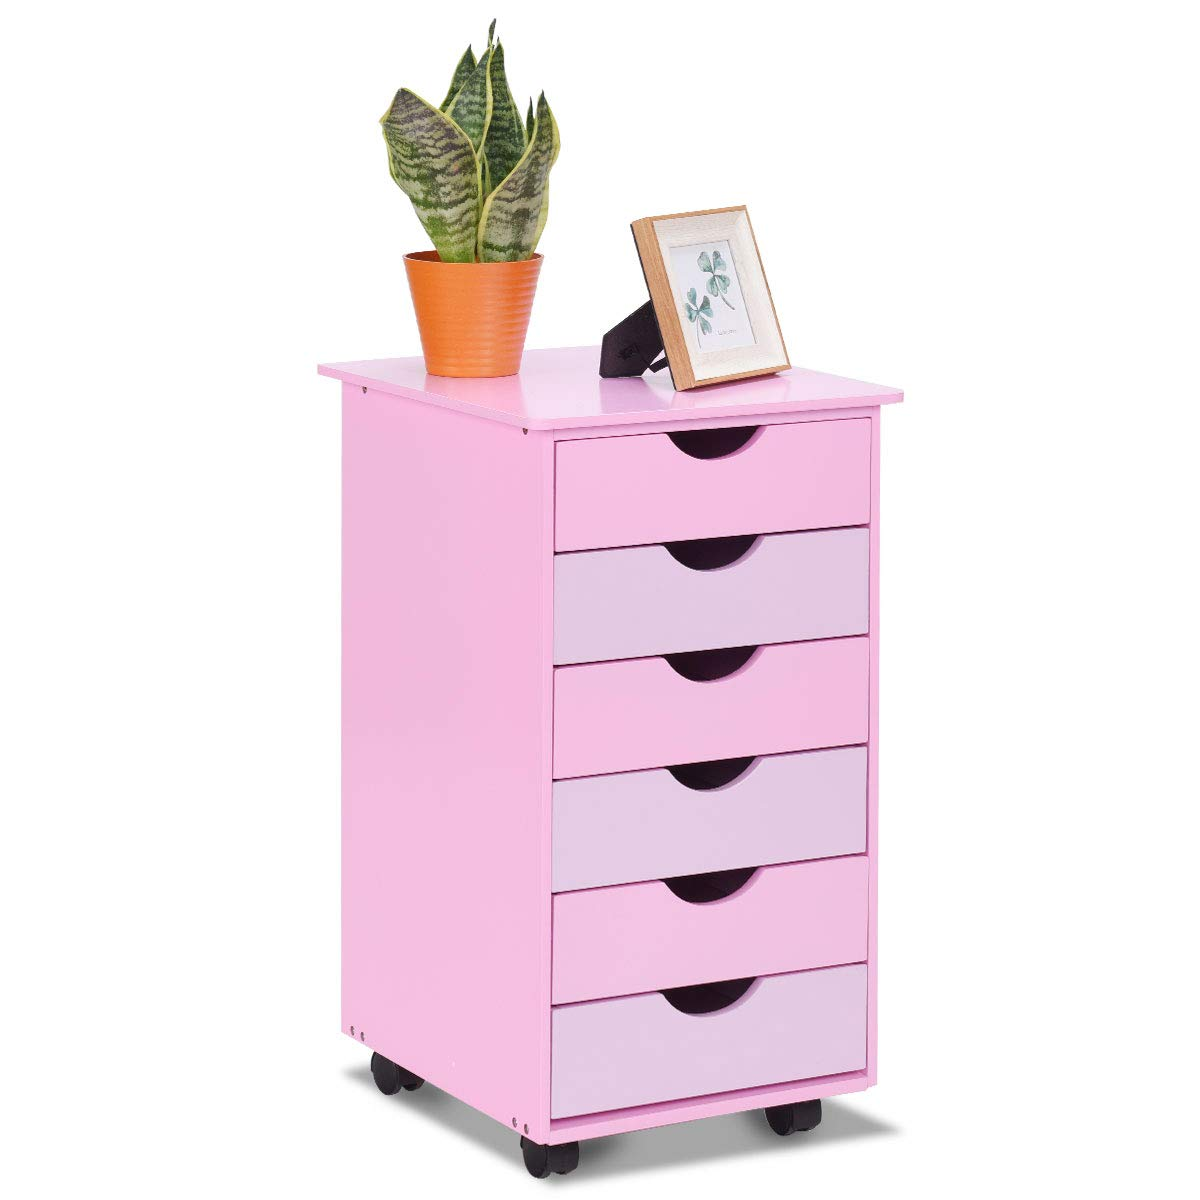 Costzon 6-Drawer Mobile File Storage Cabinet w/Wheels, Wood Removable Bedside Table, Organization 6 Drawer for Closet, Office, Girls, Bedroom Children, Kids Furniture Pink by Costzon